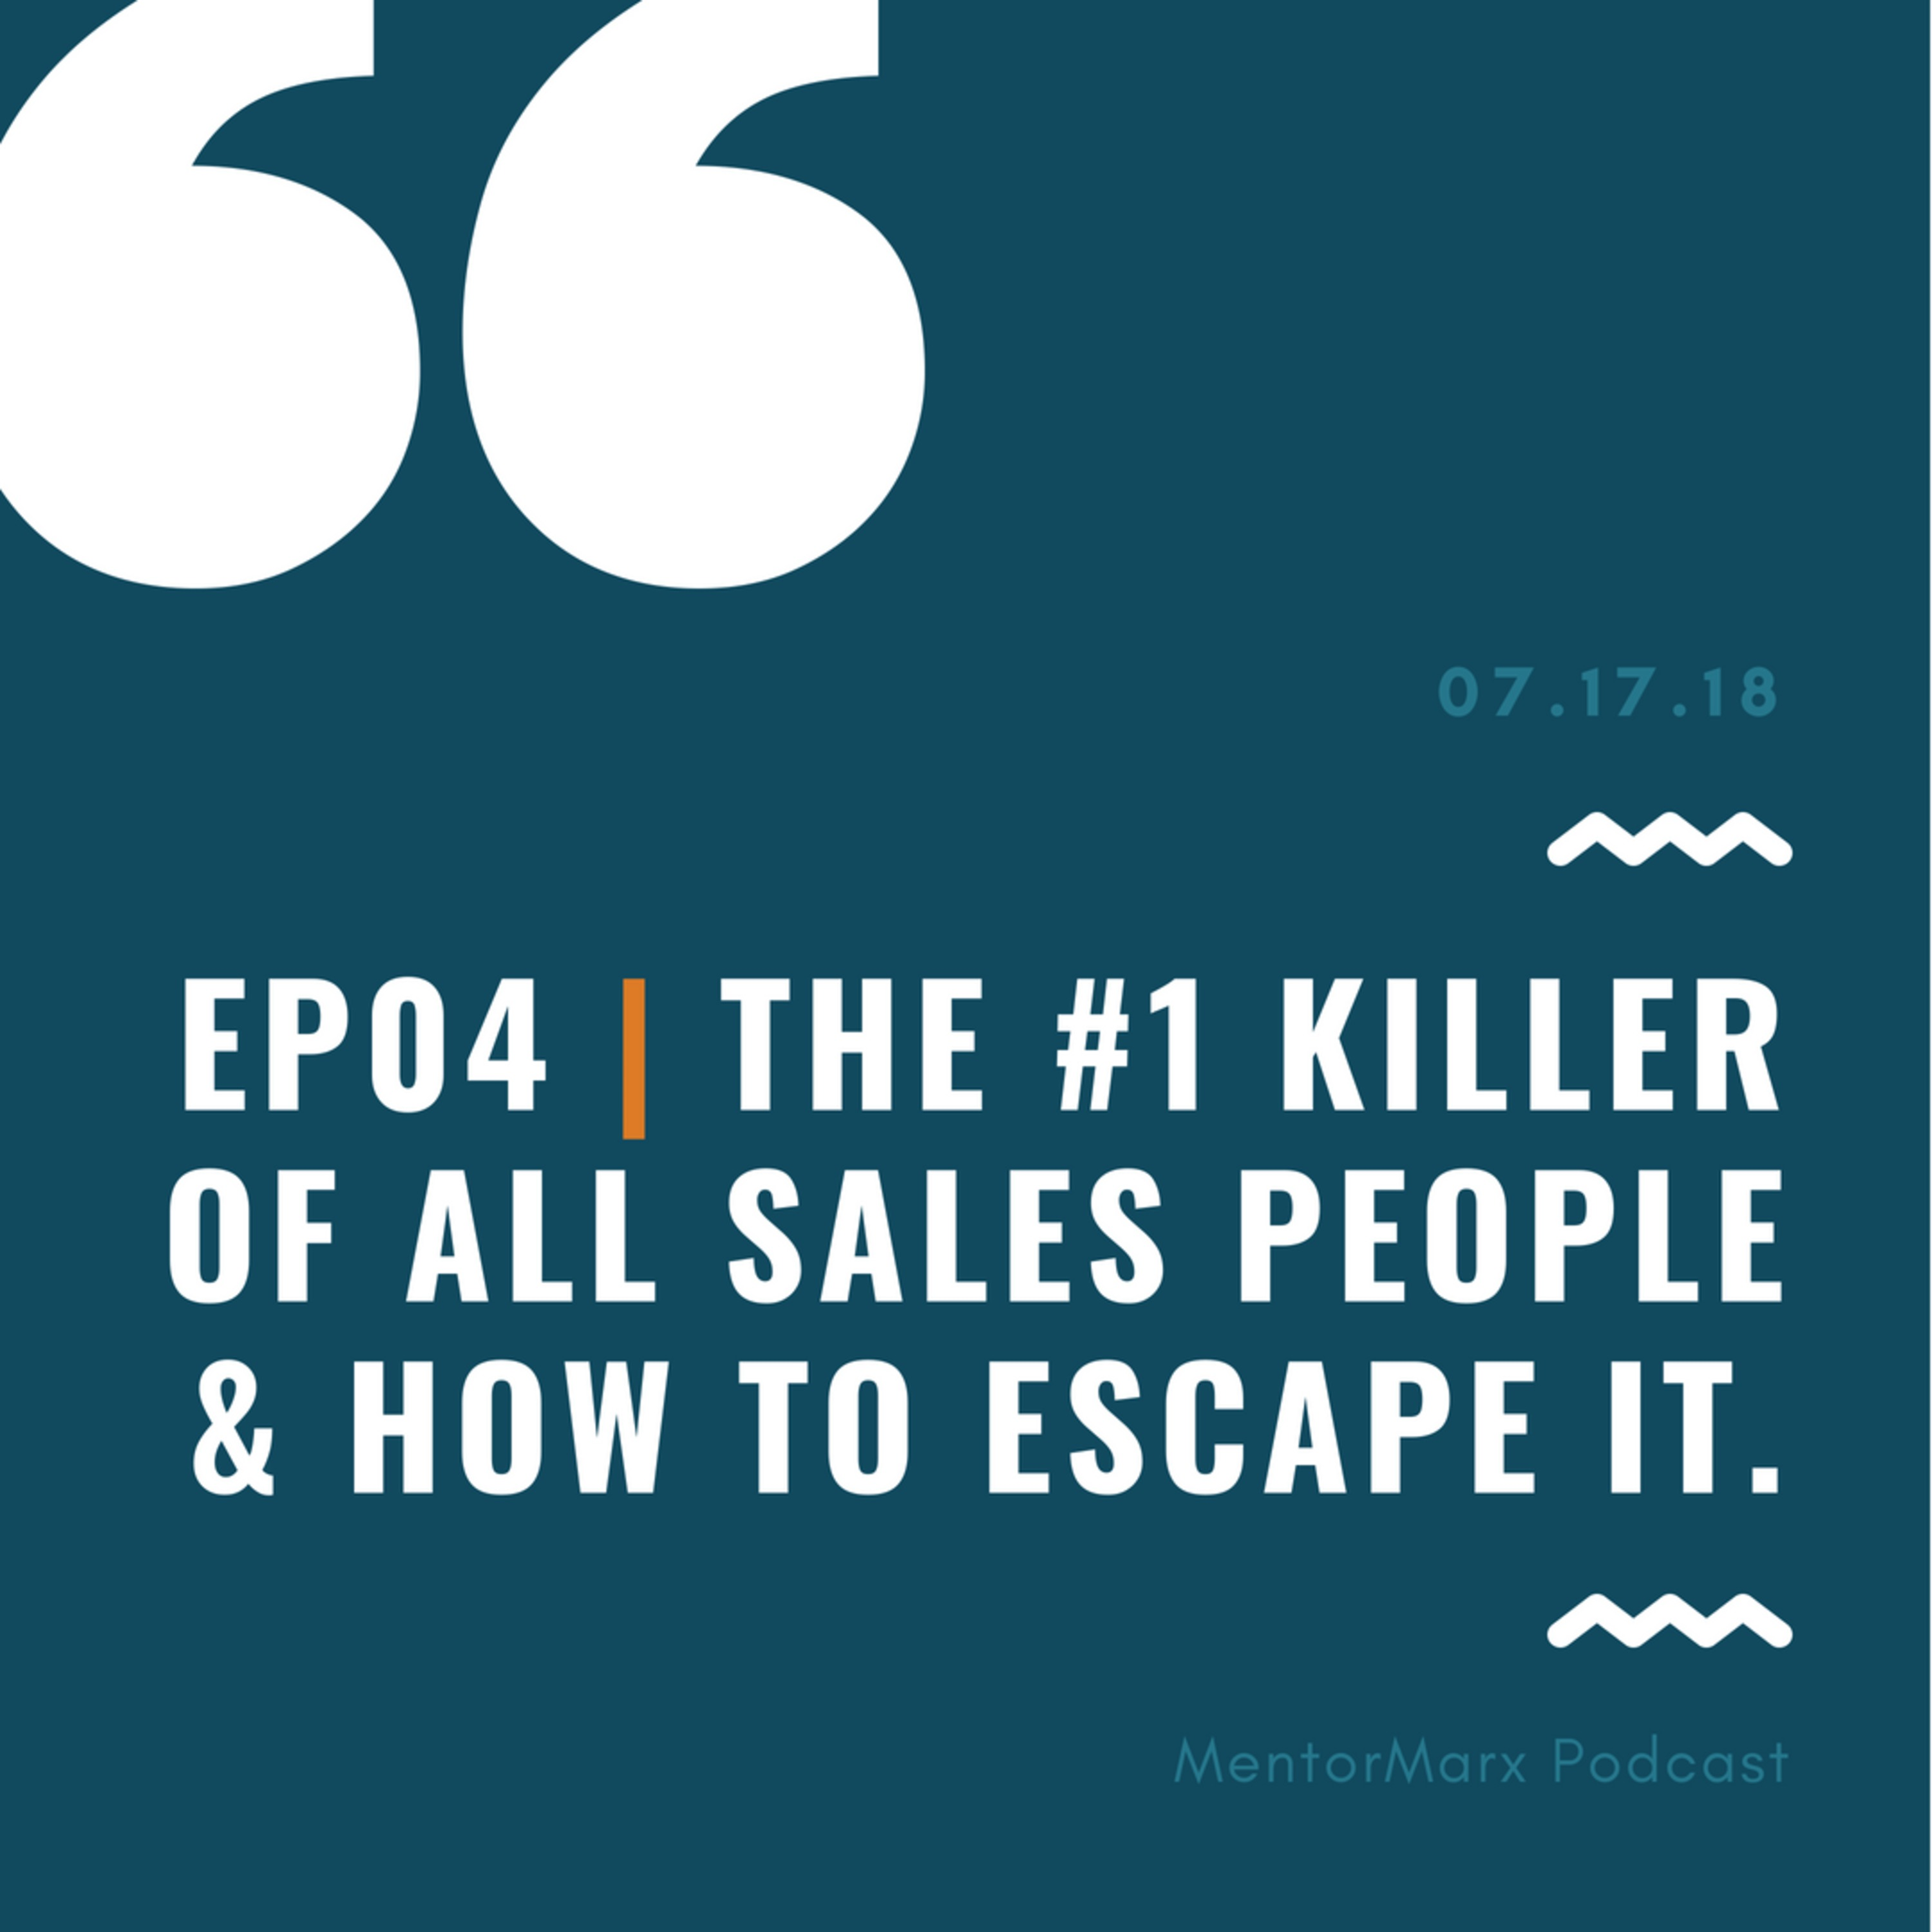 Ep04 | The #1 killer of all sales people & how to escape it